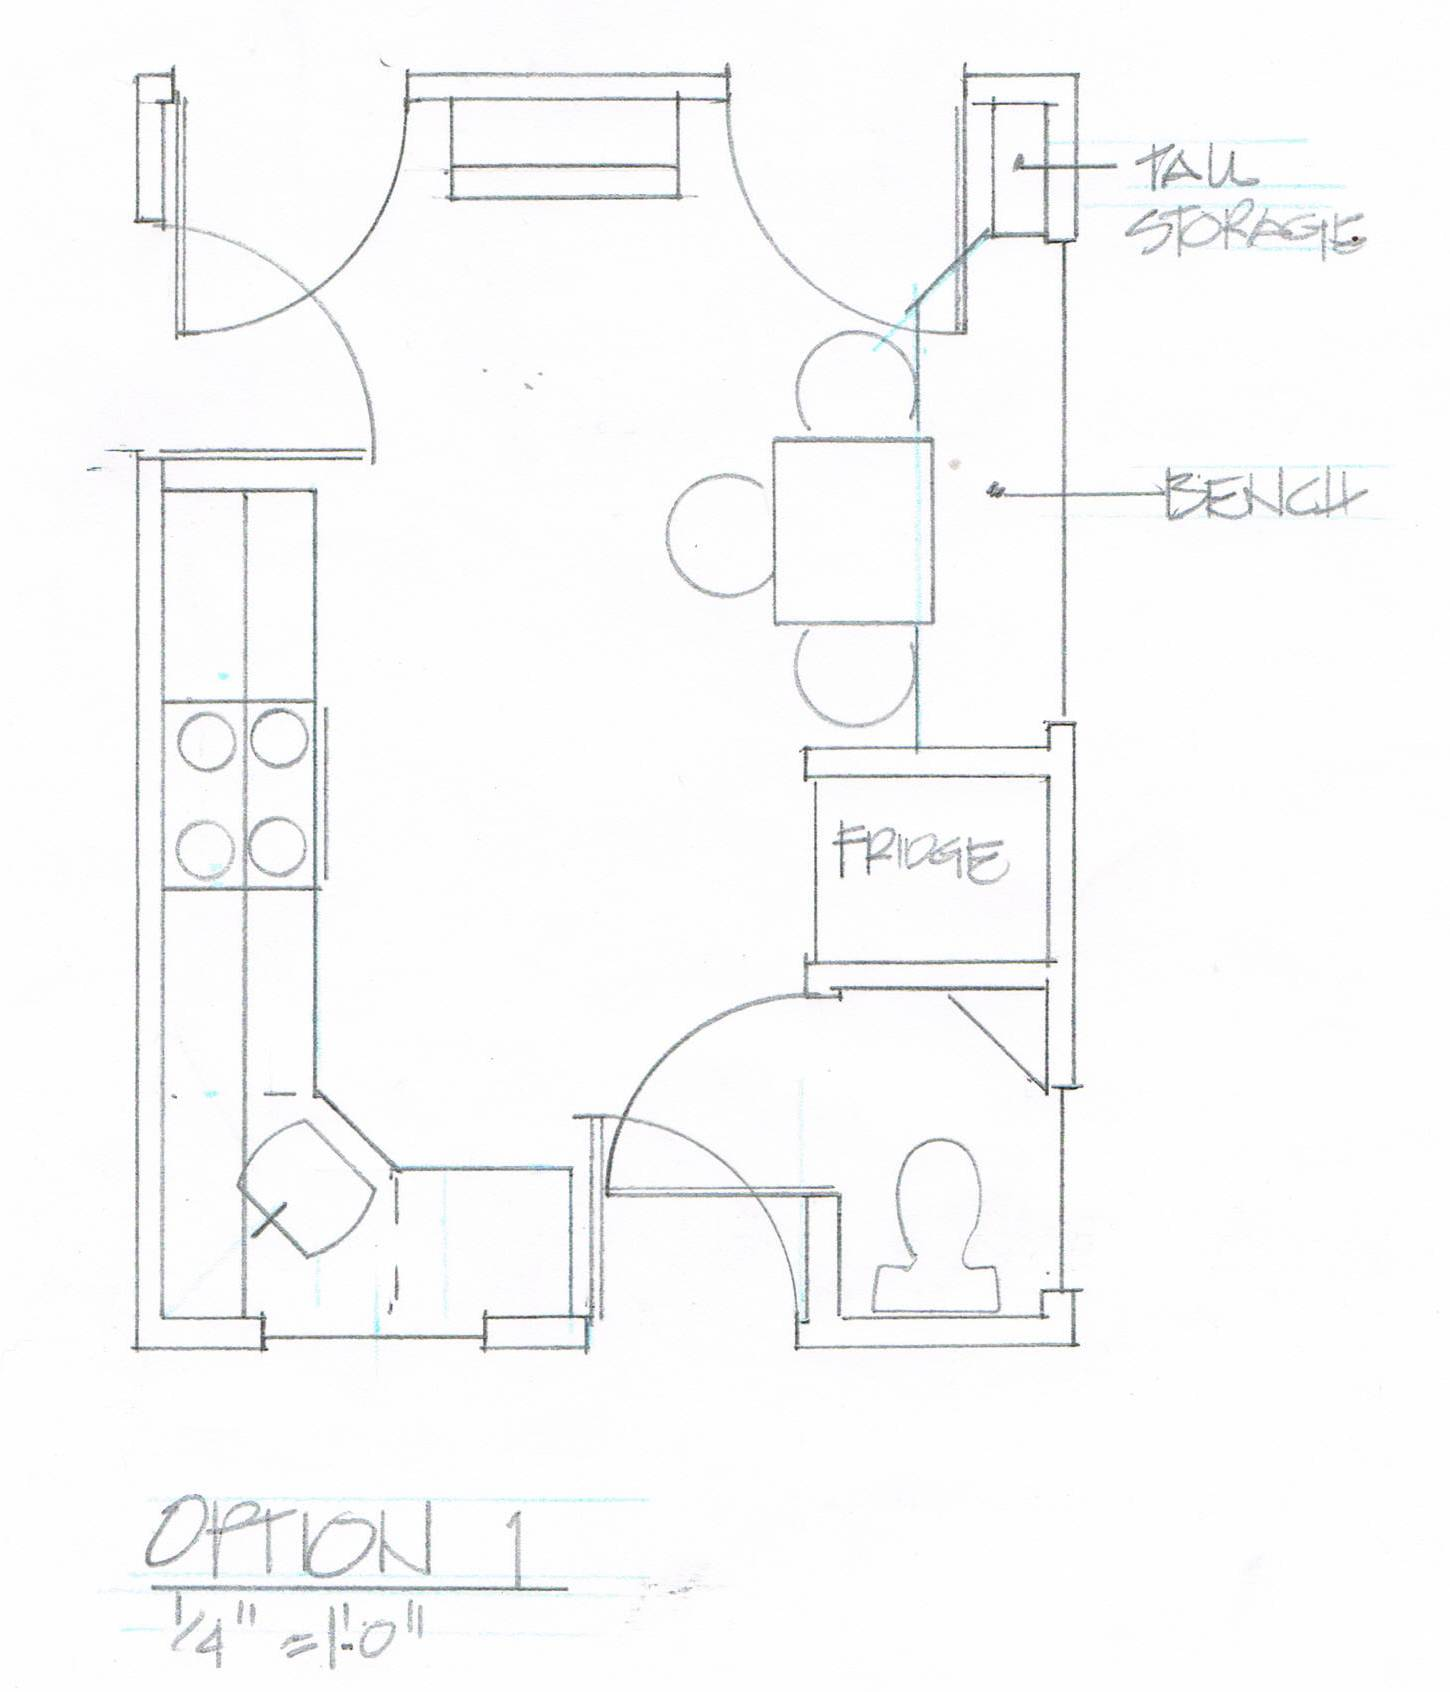 1450x1692 Kitchen Clients Drawing Autocad Archicad Planner Designs Get